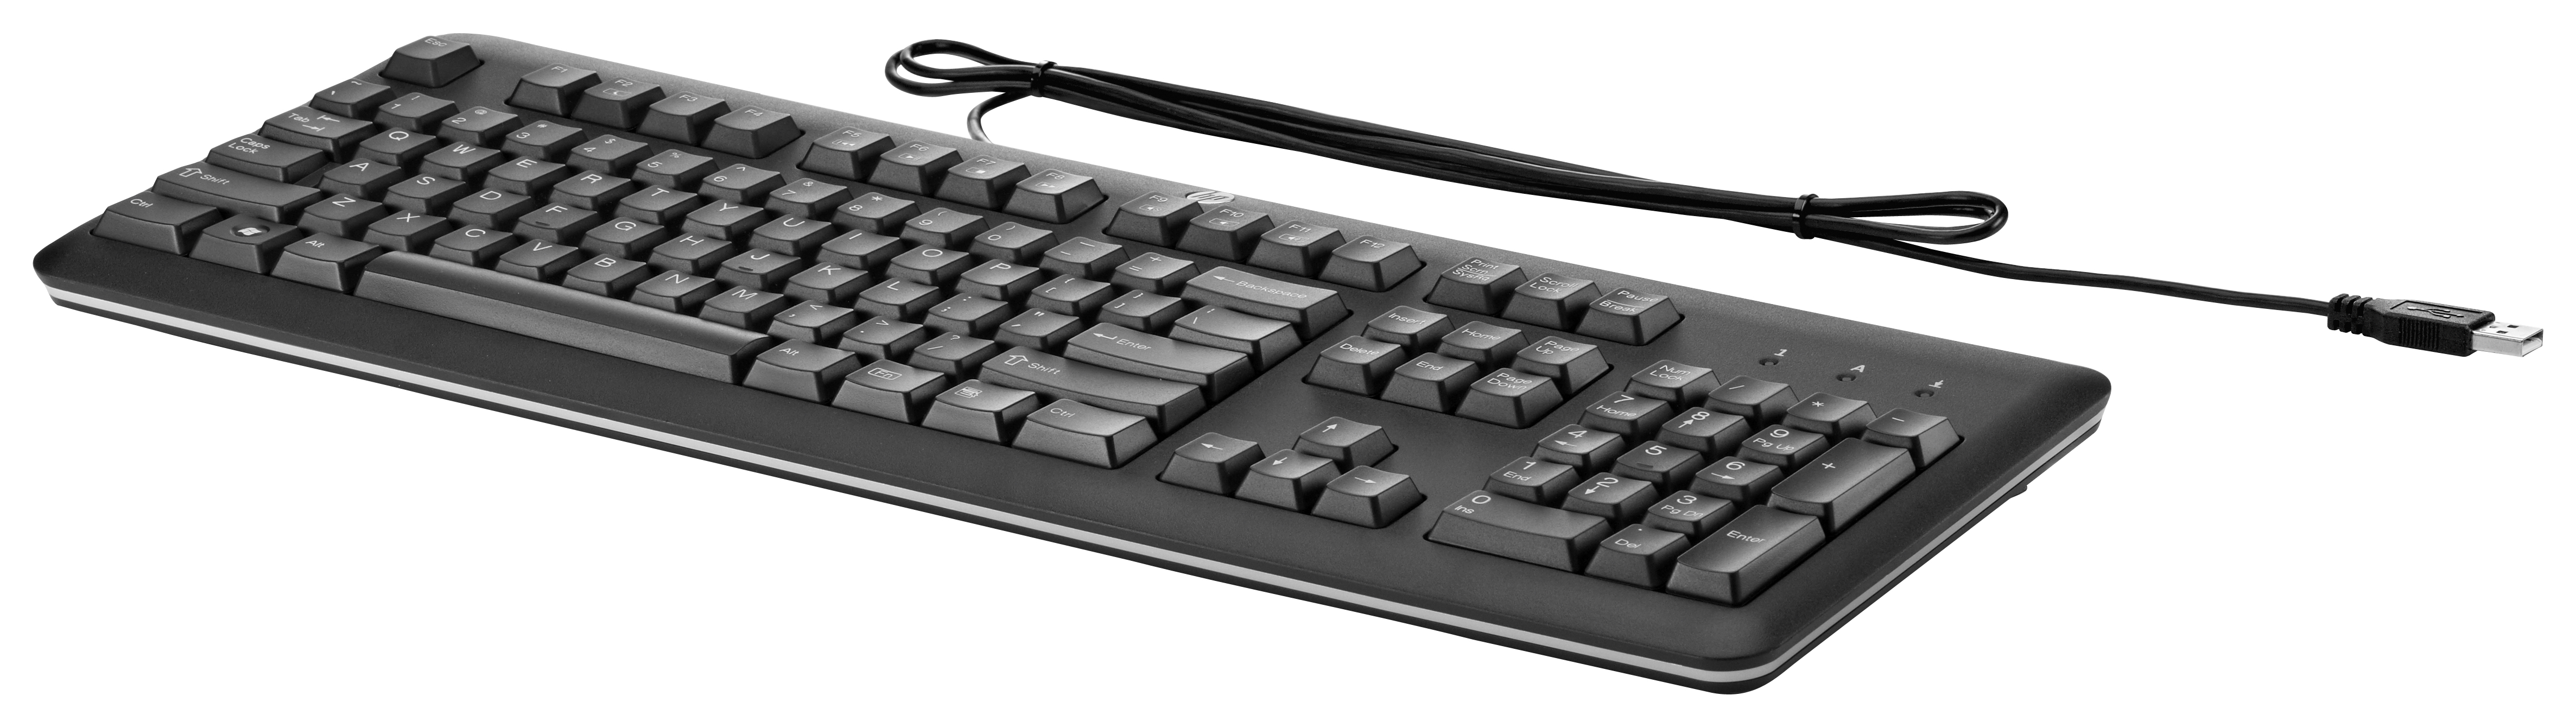 QY776AA#ABZ HP Keyboard Italien 105K USB **New Retail** - eet01